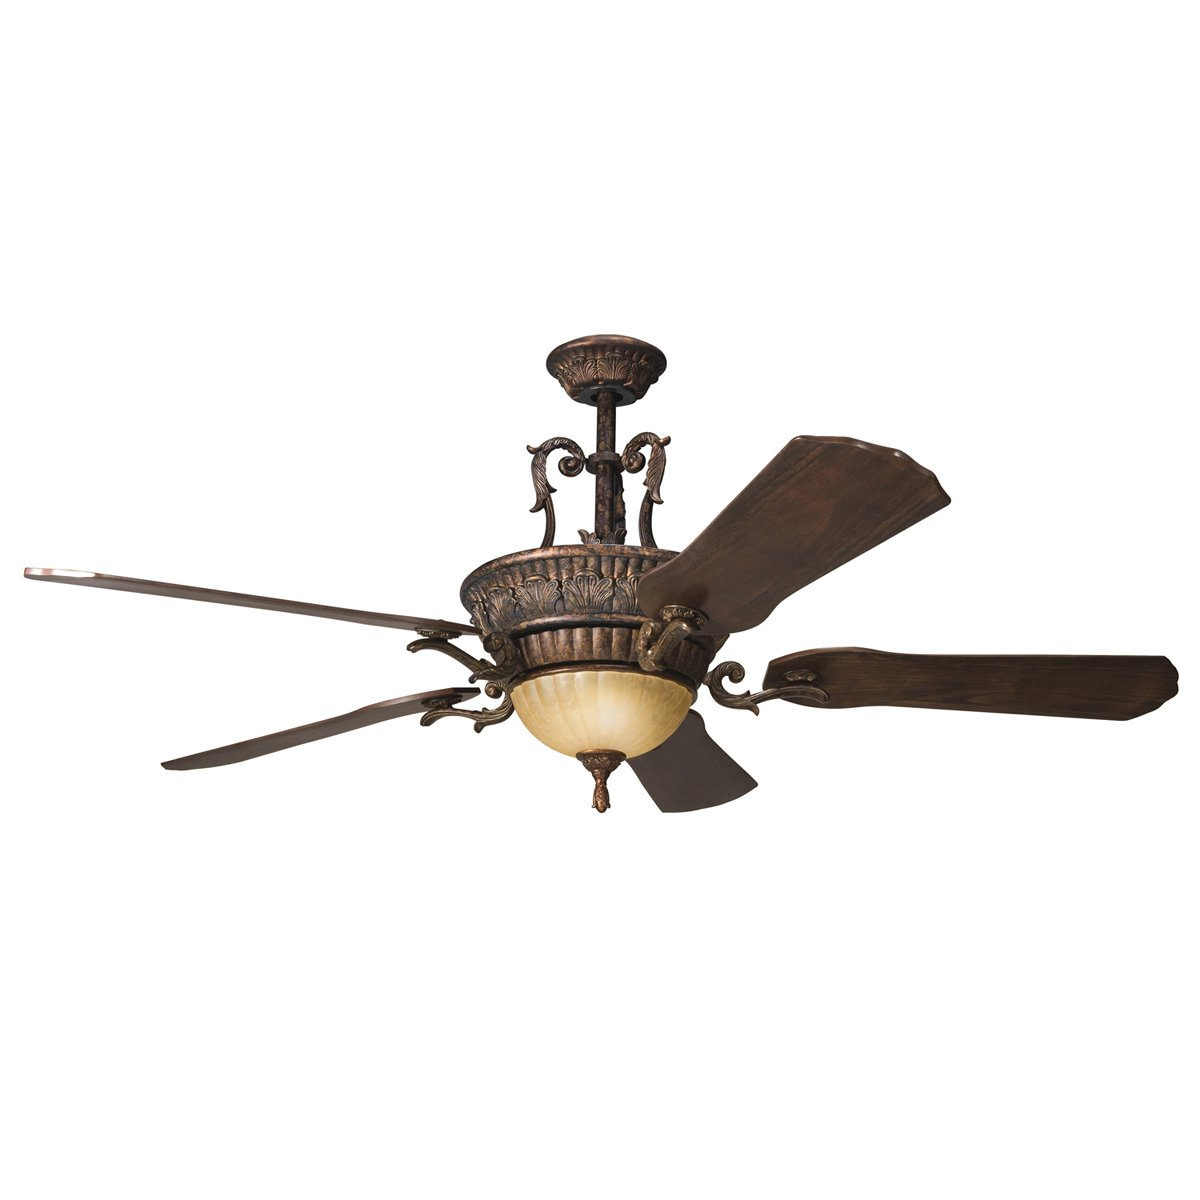 Wood Ceiling Fan With Light Part - 38: Amazon.com